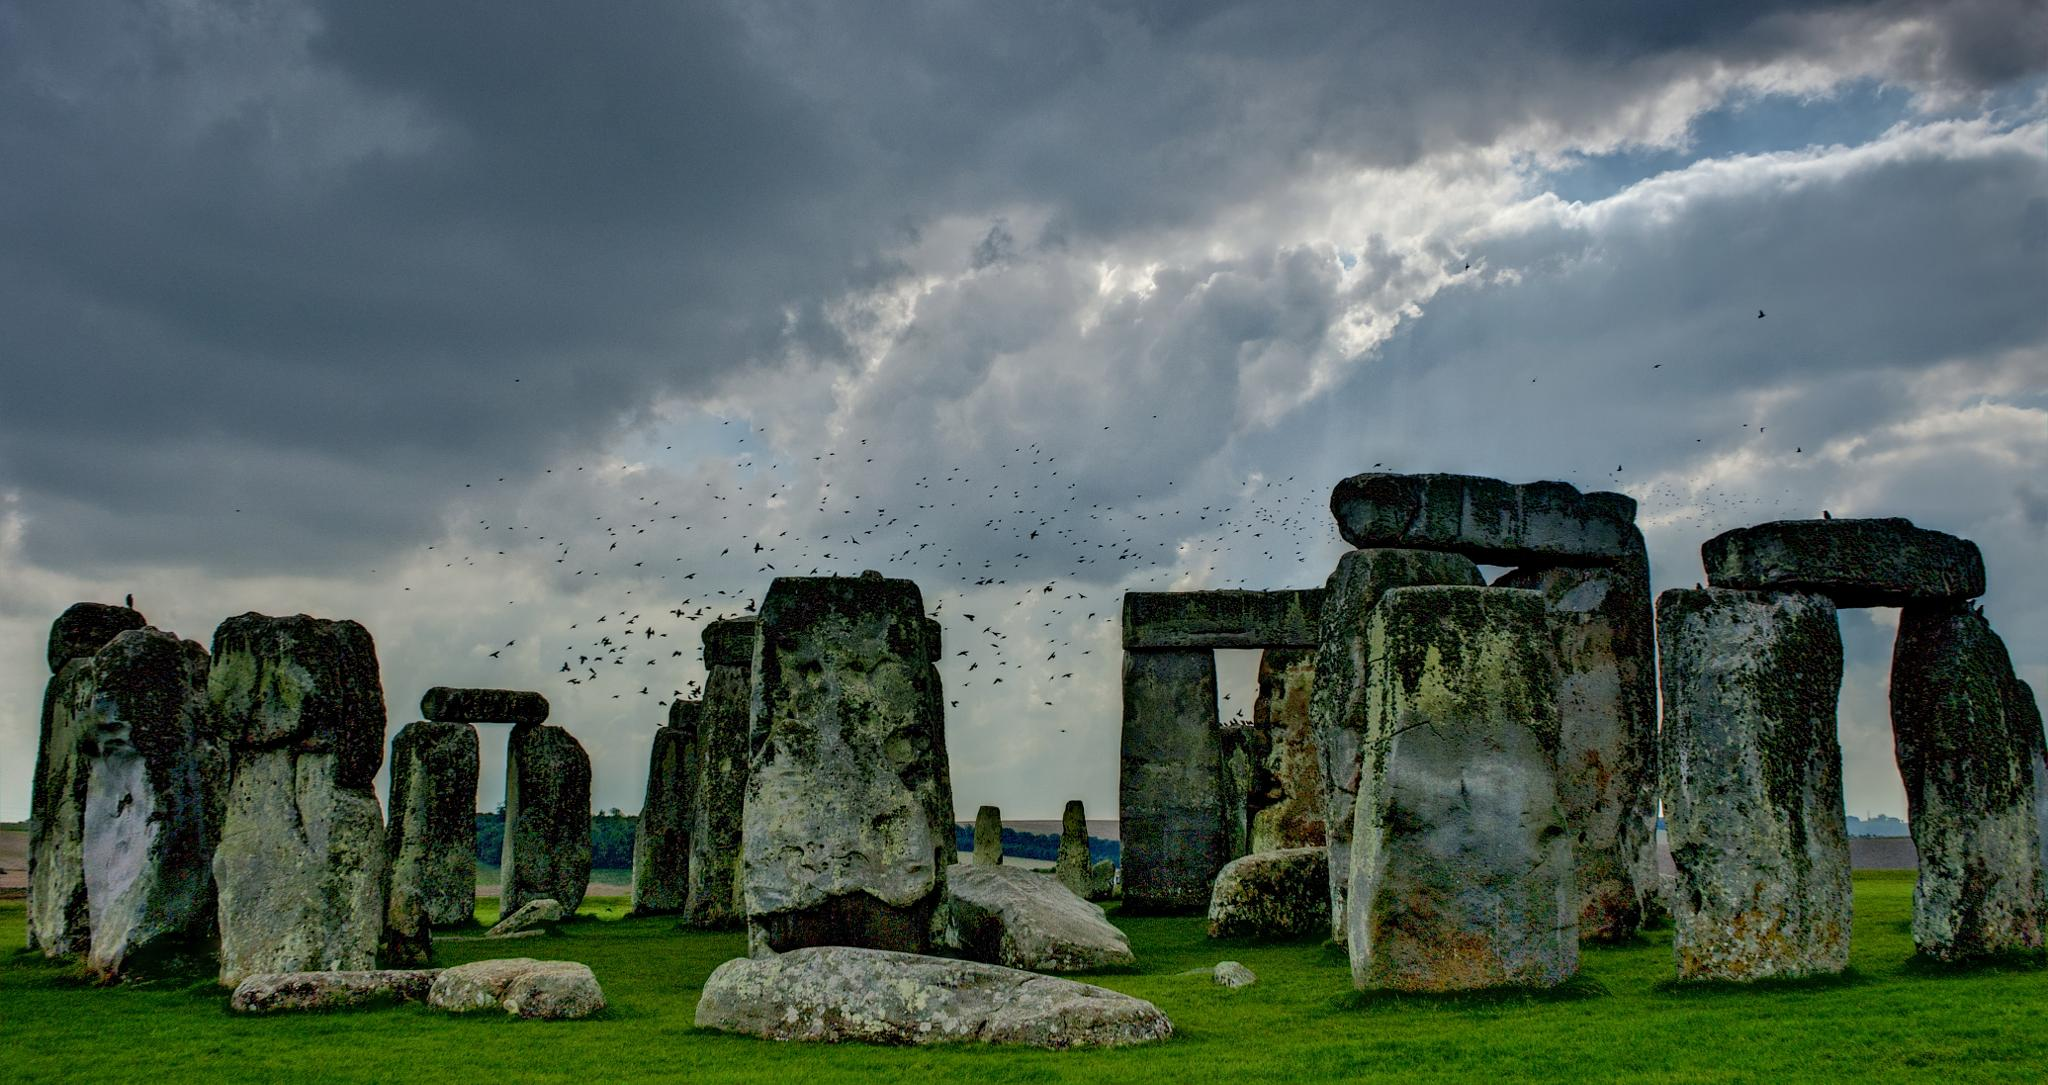 Birds of Stonehenge by Todd Edson